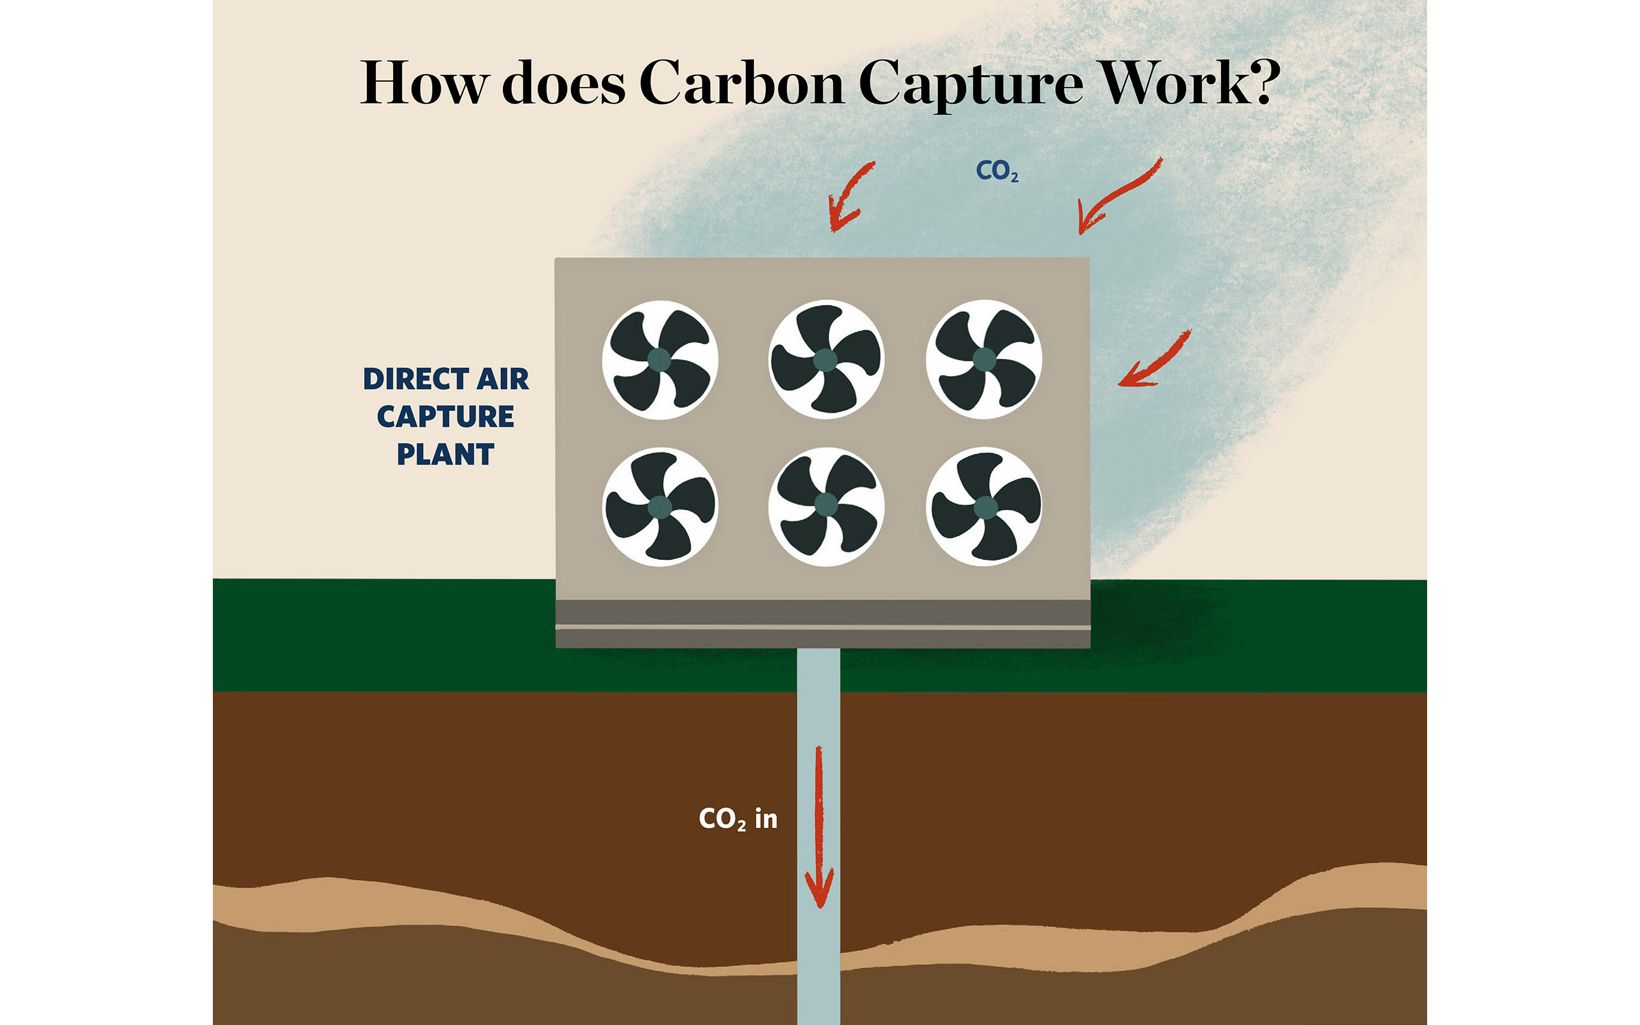 Illustration of six-fan device pulling CO2 out of air and pumping liquified CO2 into ground.